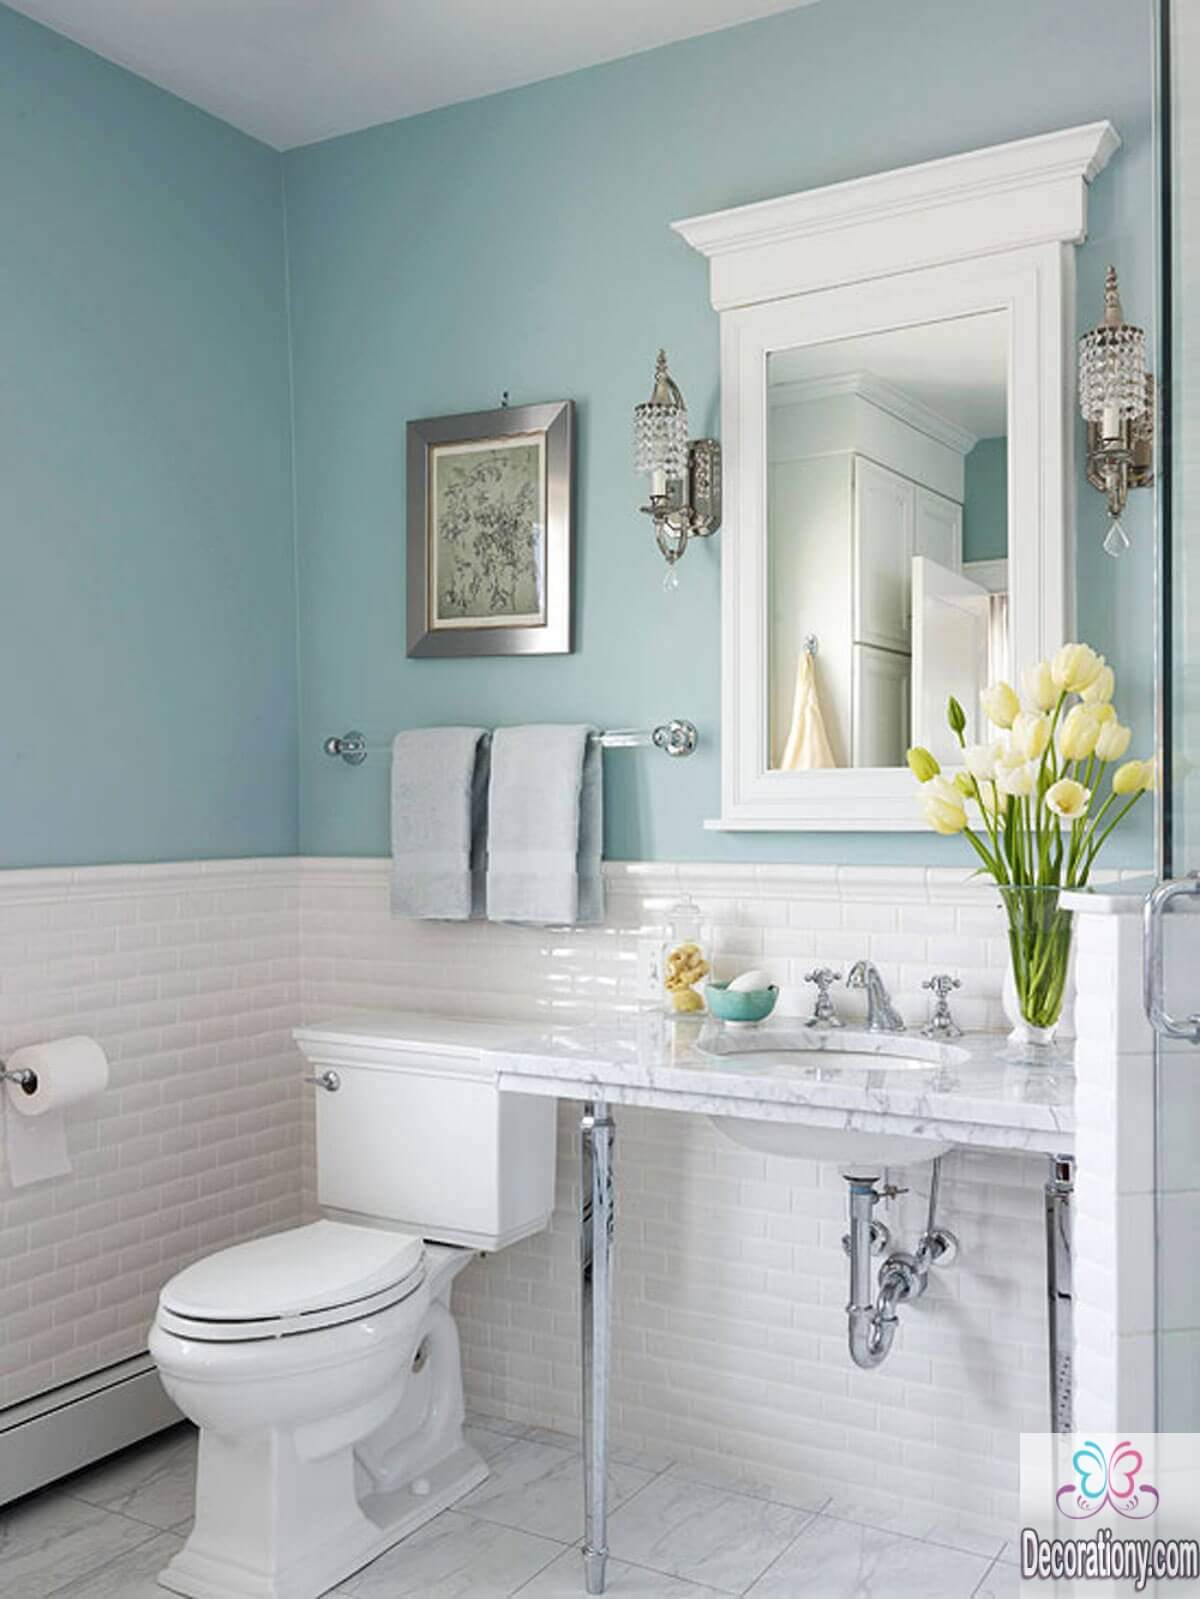 10 affordable colors for small bathrooms decoration y for A small bathroom design